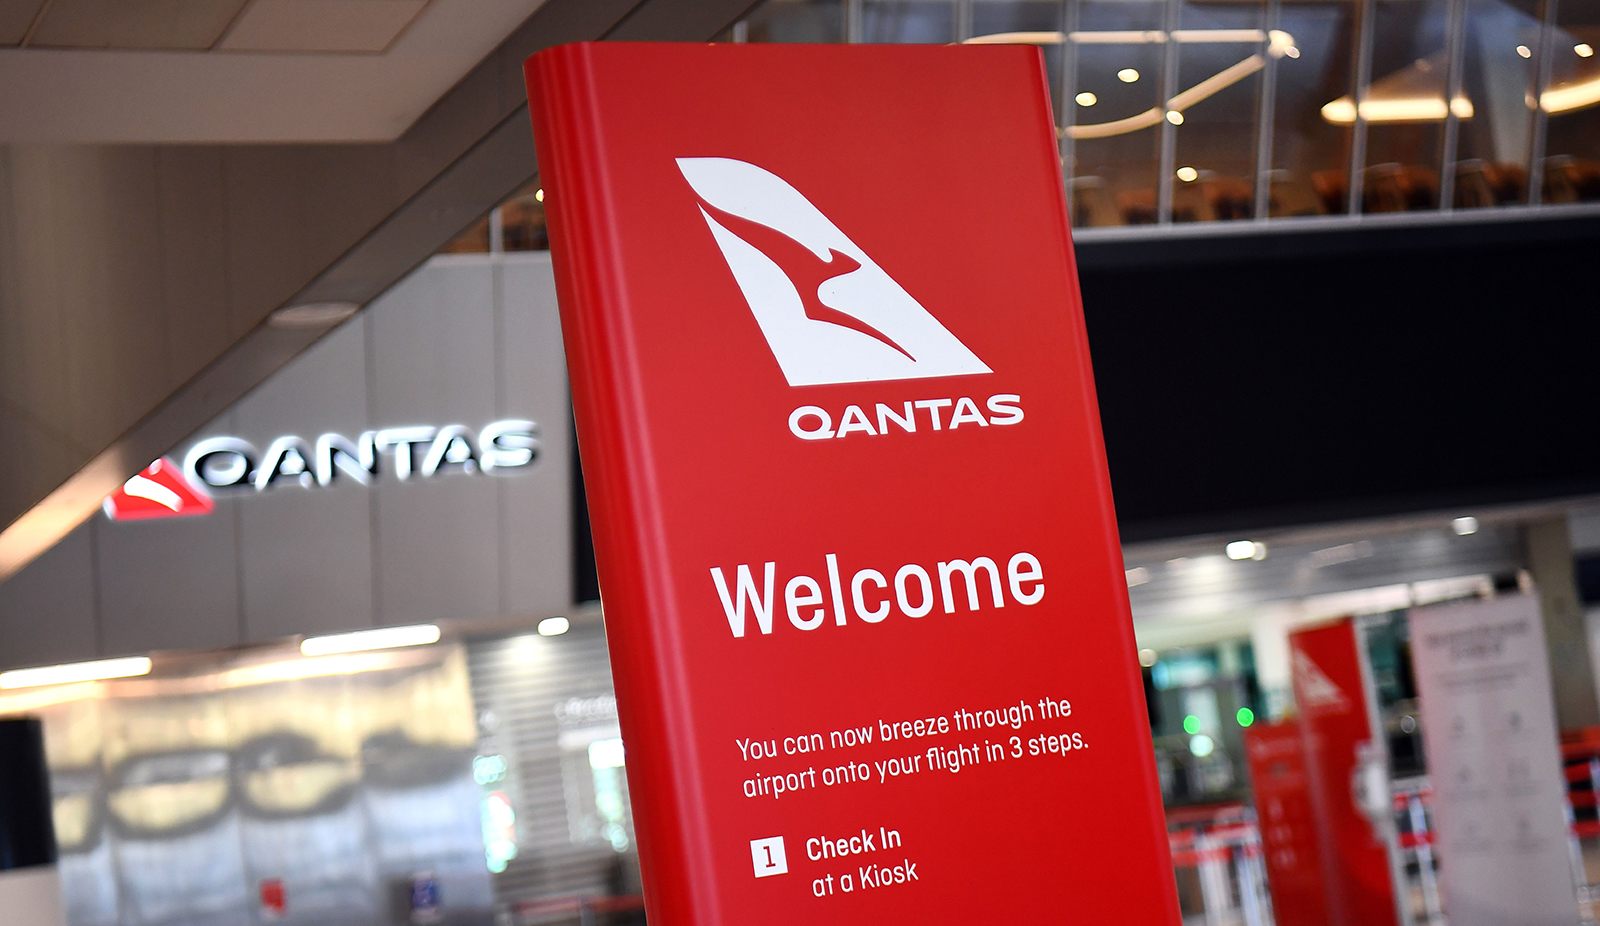 A general view shows the empty Qantas departure terminal at Melbourne Airport in Australia, on August 20.